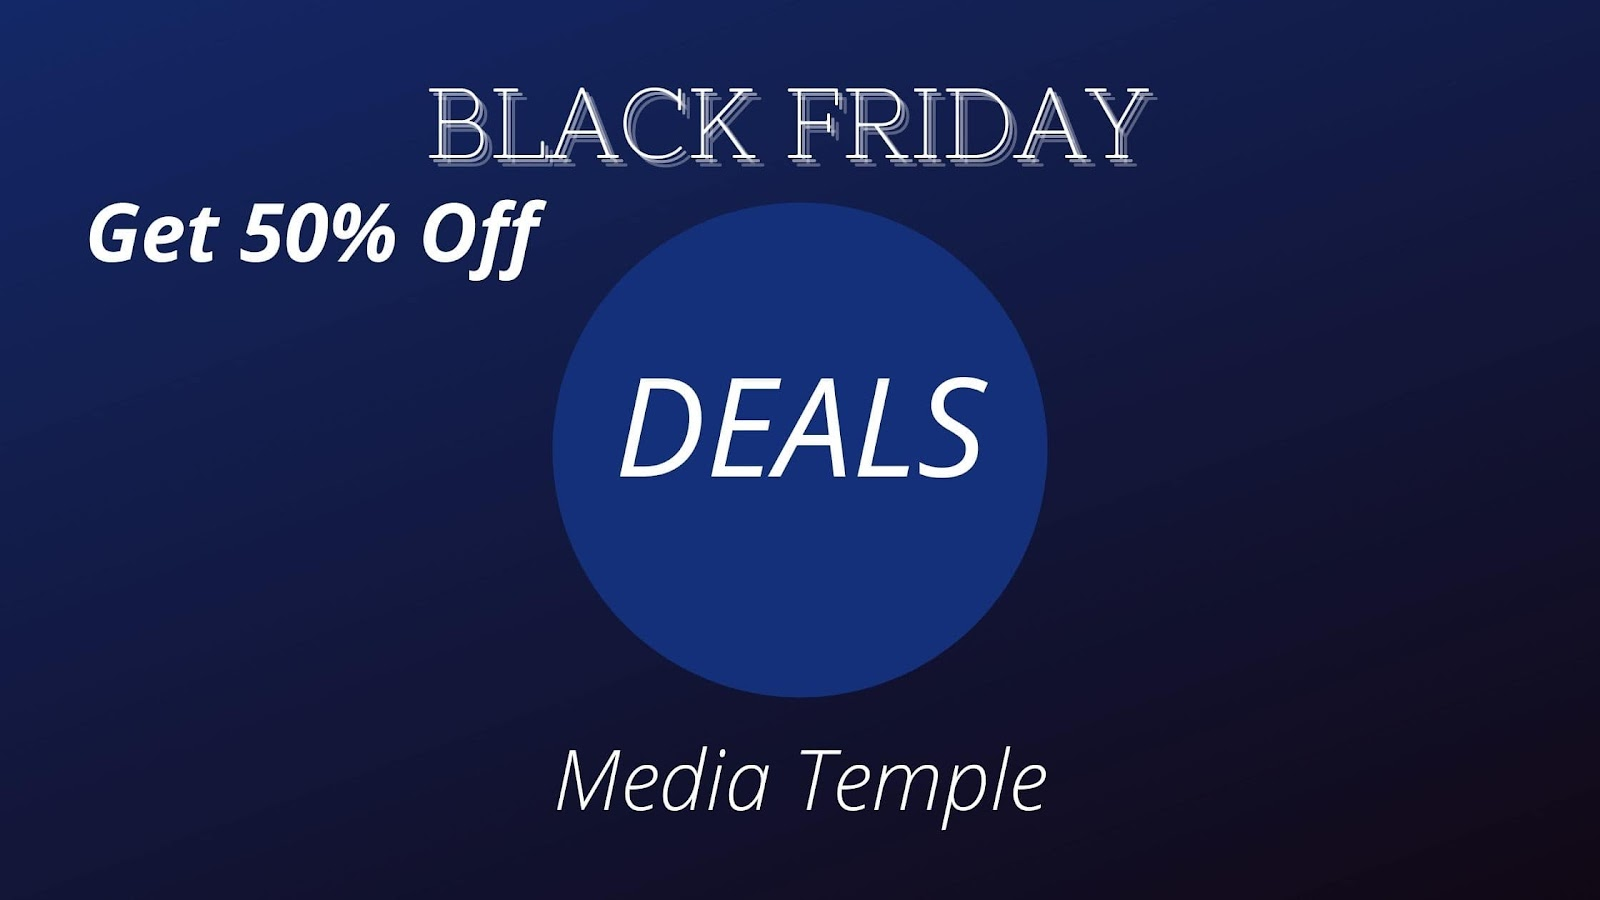 Media Temple: GET 50% Off